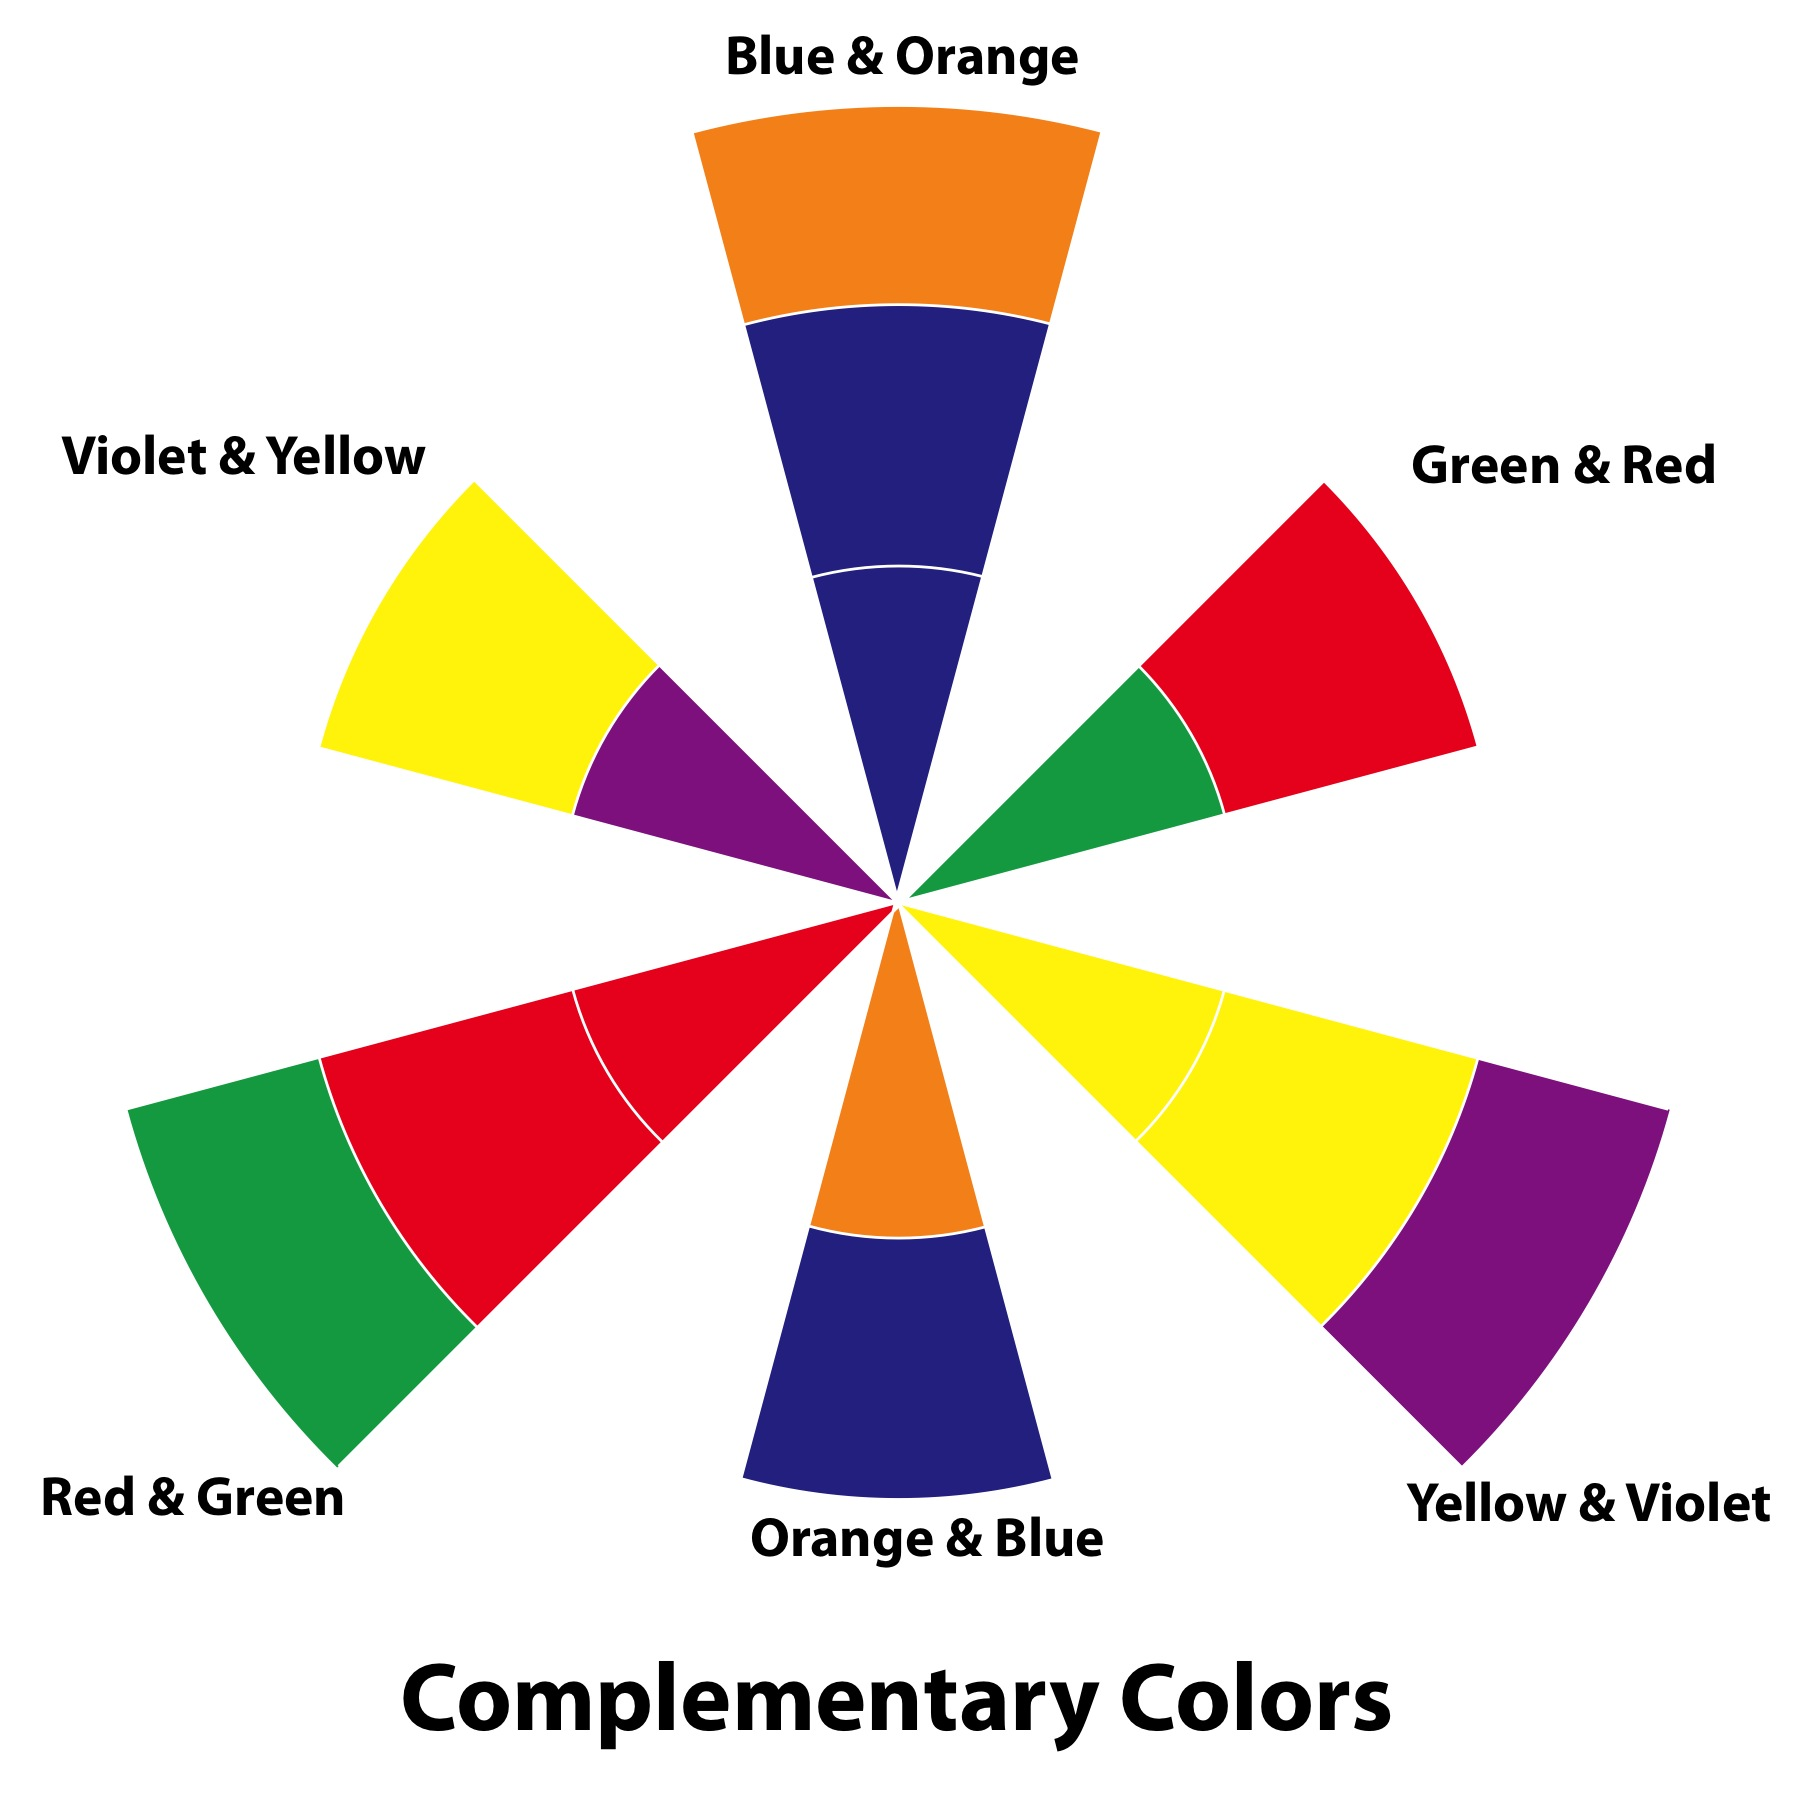 A Color Wheel showing complementary colors